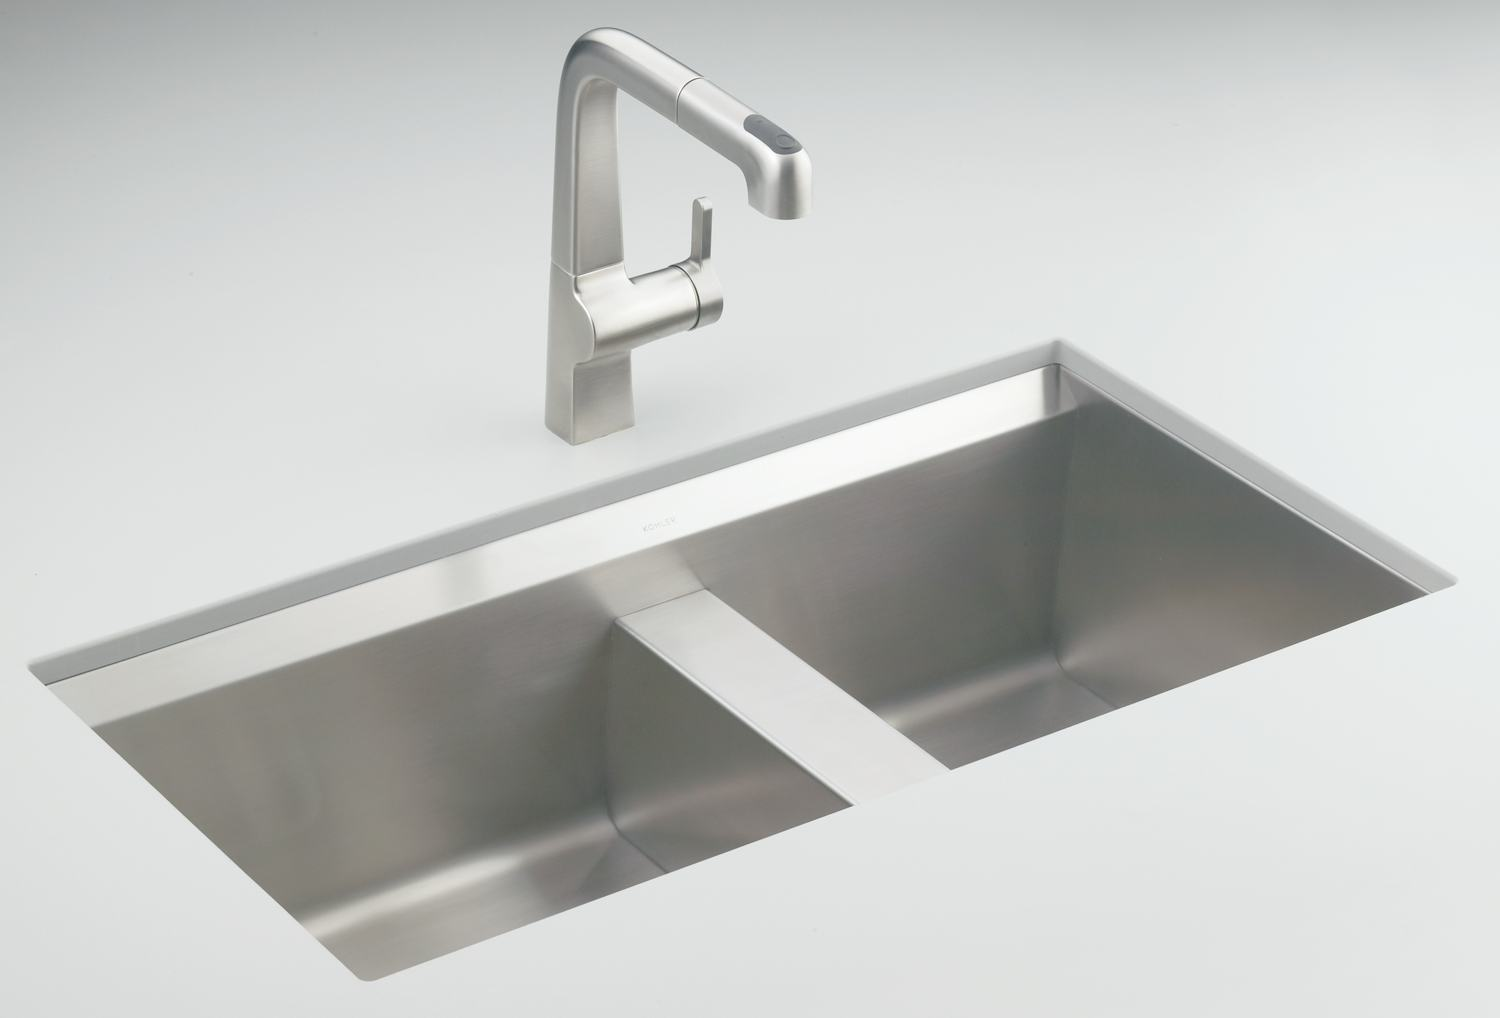 Kohler Kitchen Sinks : Amazon.com: KOHLER K-3672-NA 8 Degree Offset Double Basin Kitchen Sink ...